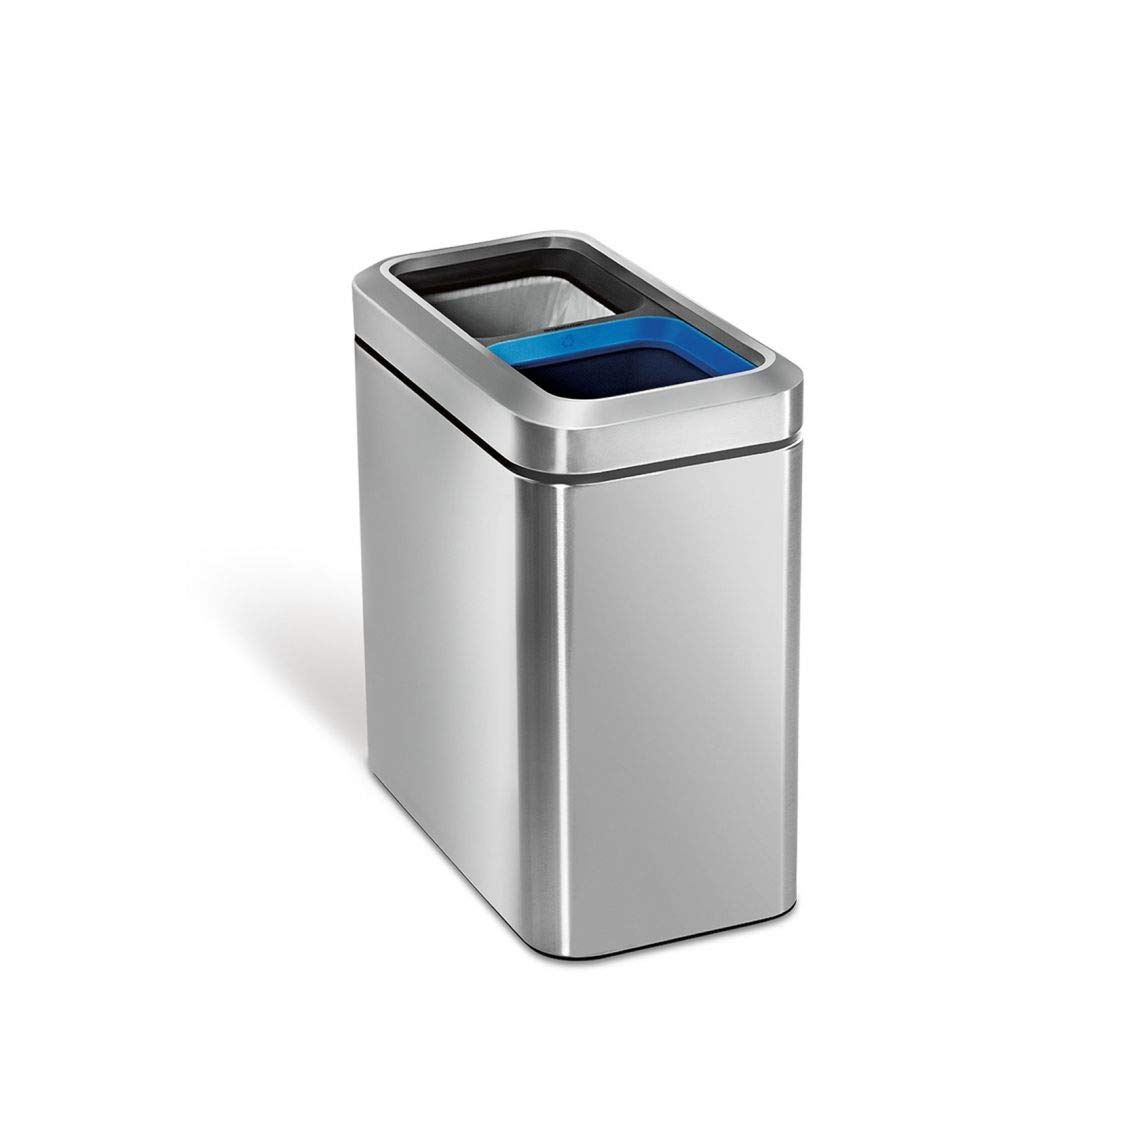 simplehuman 20 Liter / 5.3 Gallon Commercial Stainless Steel Slim Open Trash Can Dual Compartment, Brushed Stainless Steel,